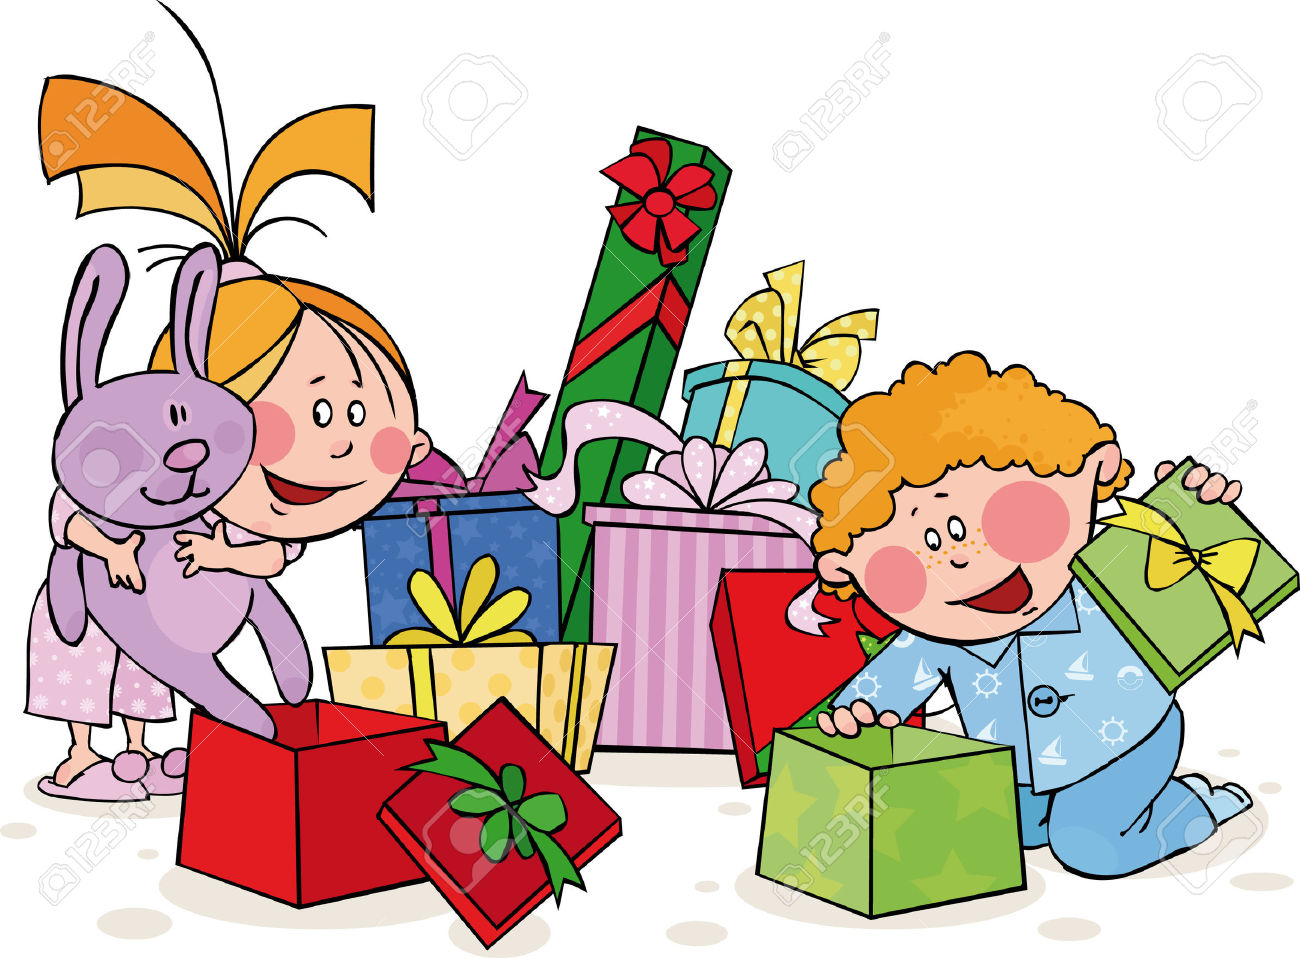 Christmas Clipart For Children at GetDrawings.com | Free for ...